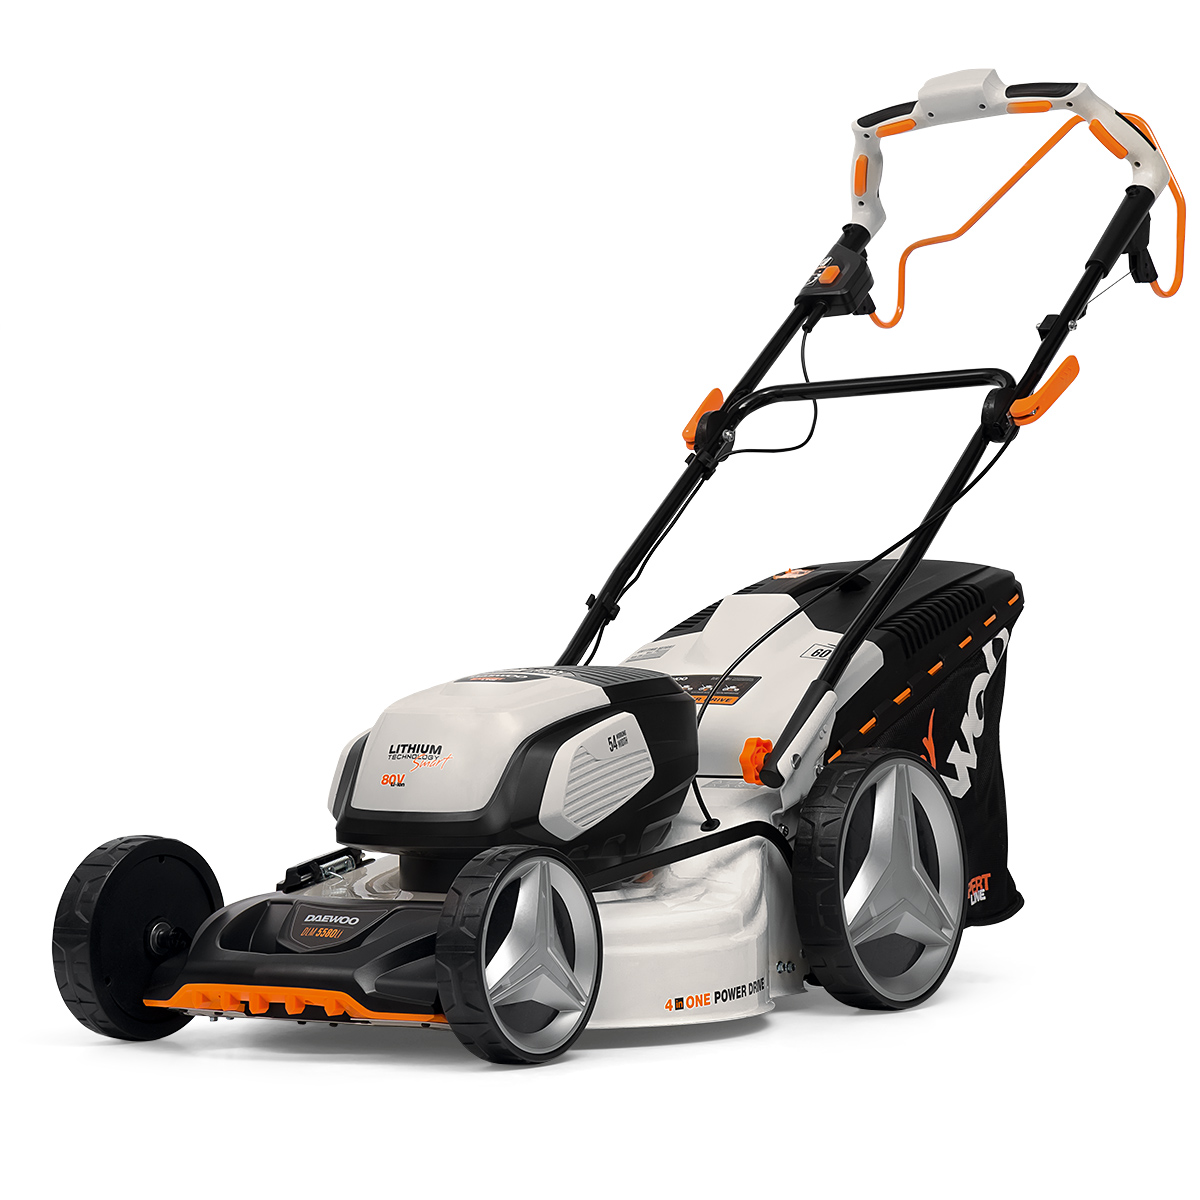 Battery Lawn Mower Daewoo DLM 5580Li